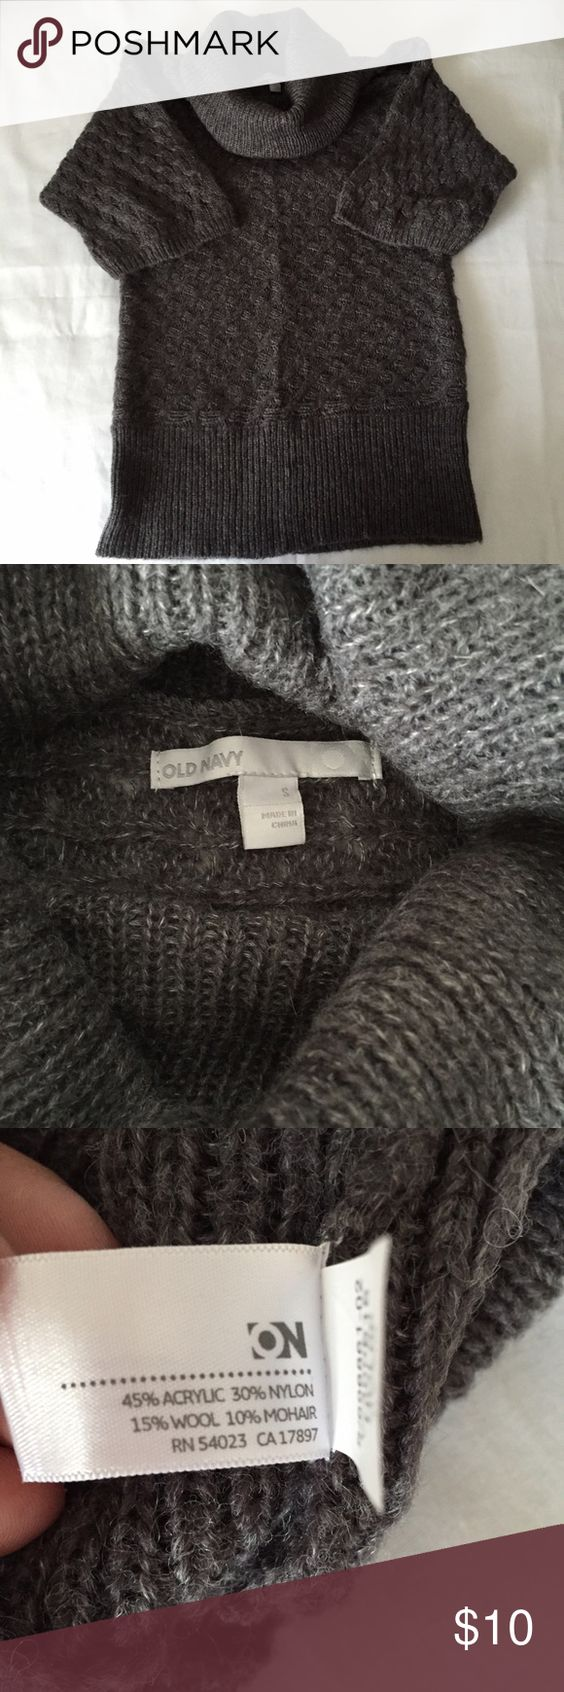 Old navy sweater S Short sleeve cowlneck sweater in EUC. Old Navy Sweaters Cowl & Turtlenecks